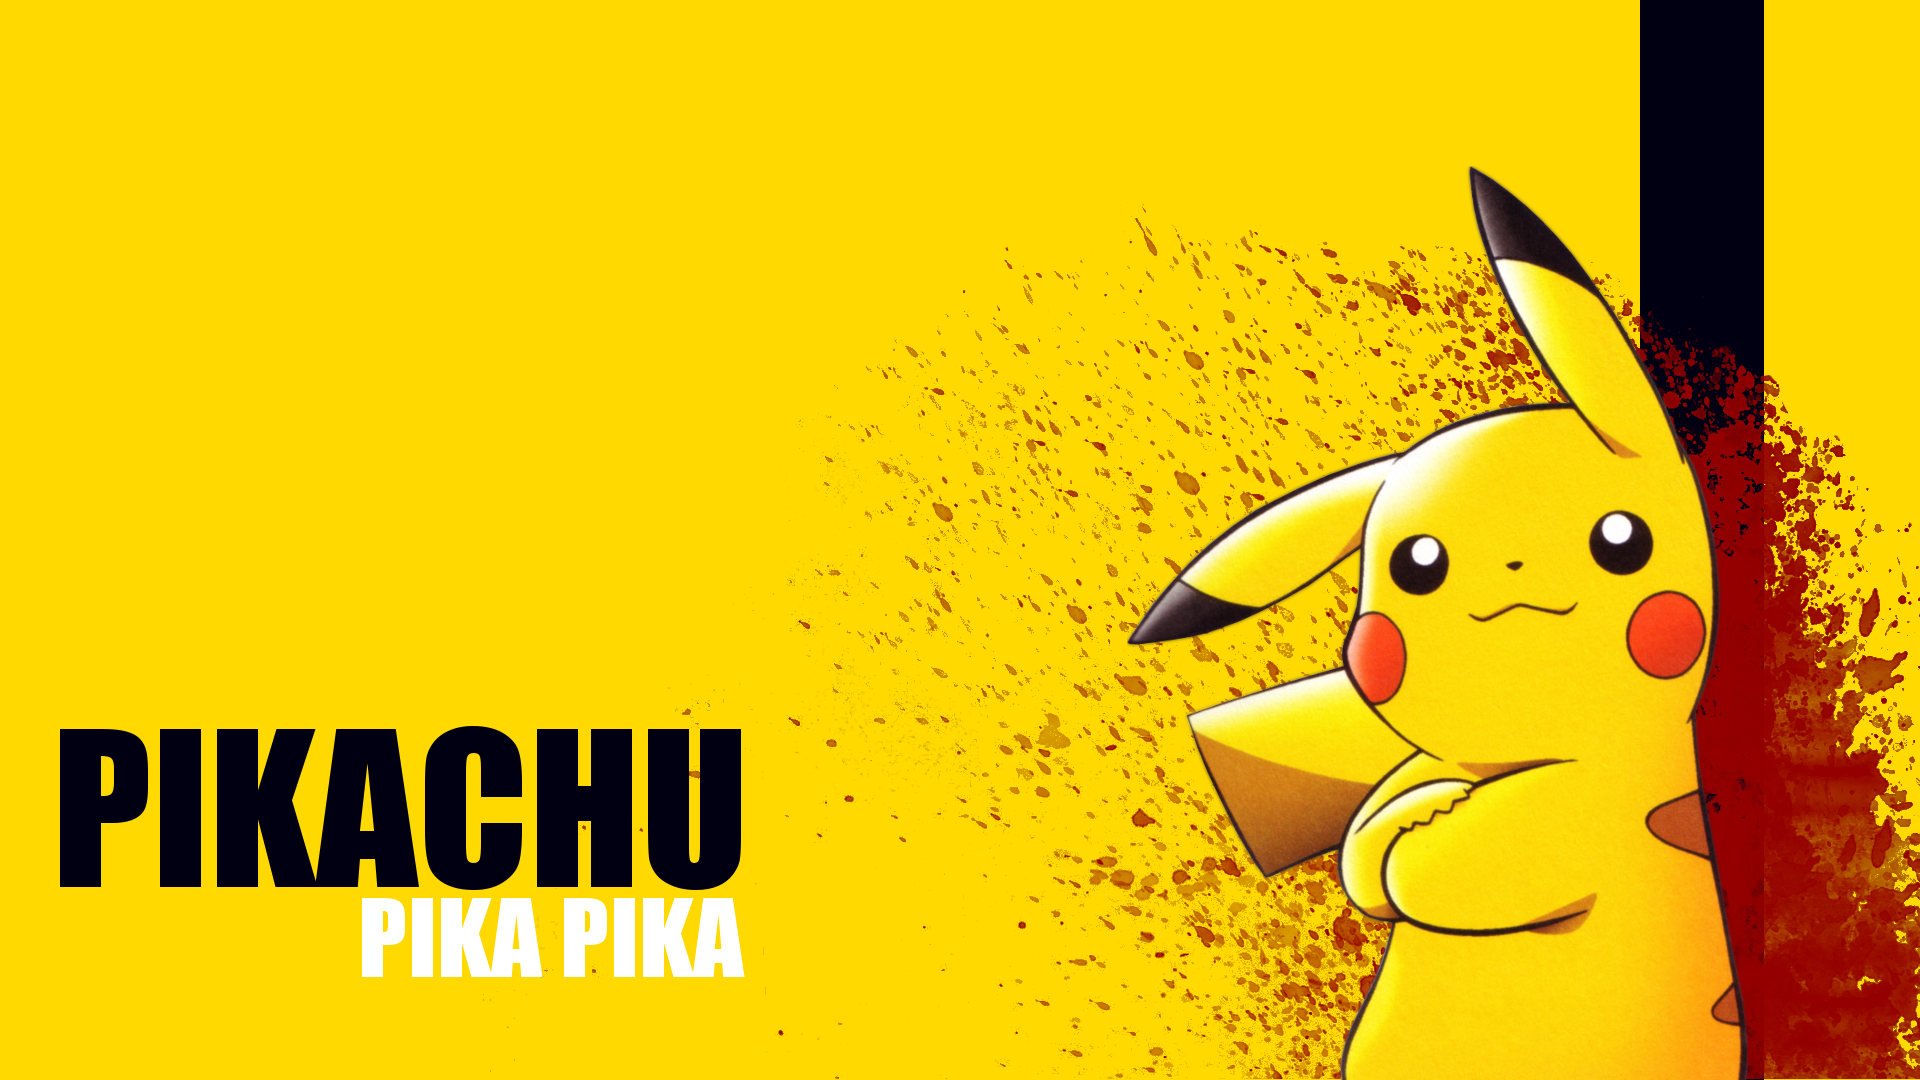 Full HD Pikachu Wallpapers Pictures